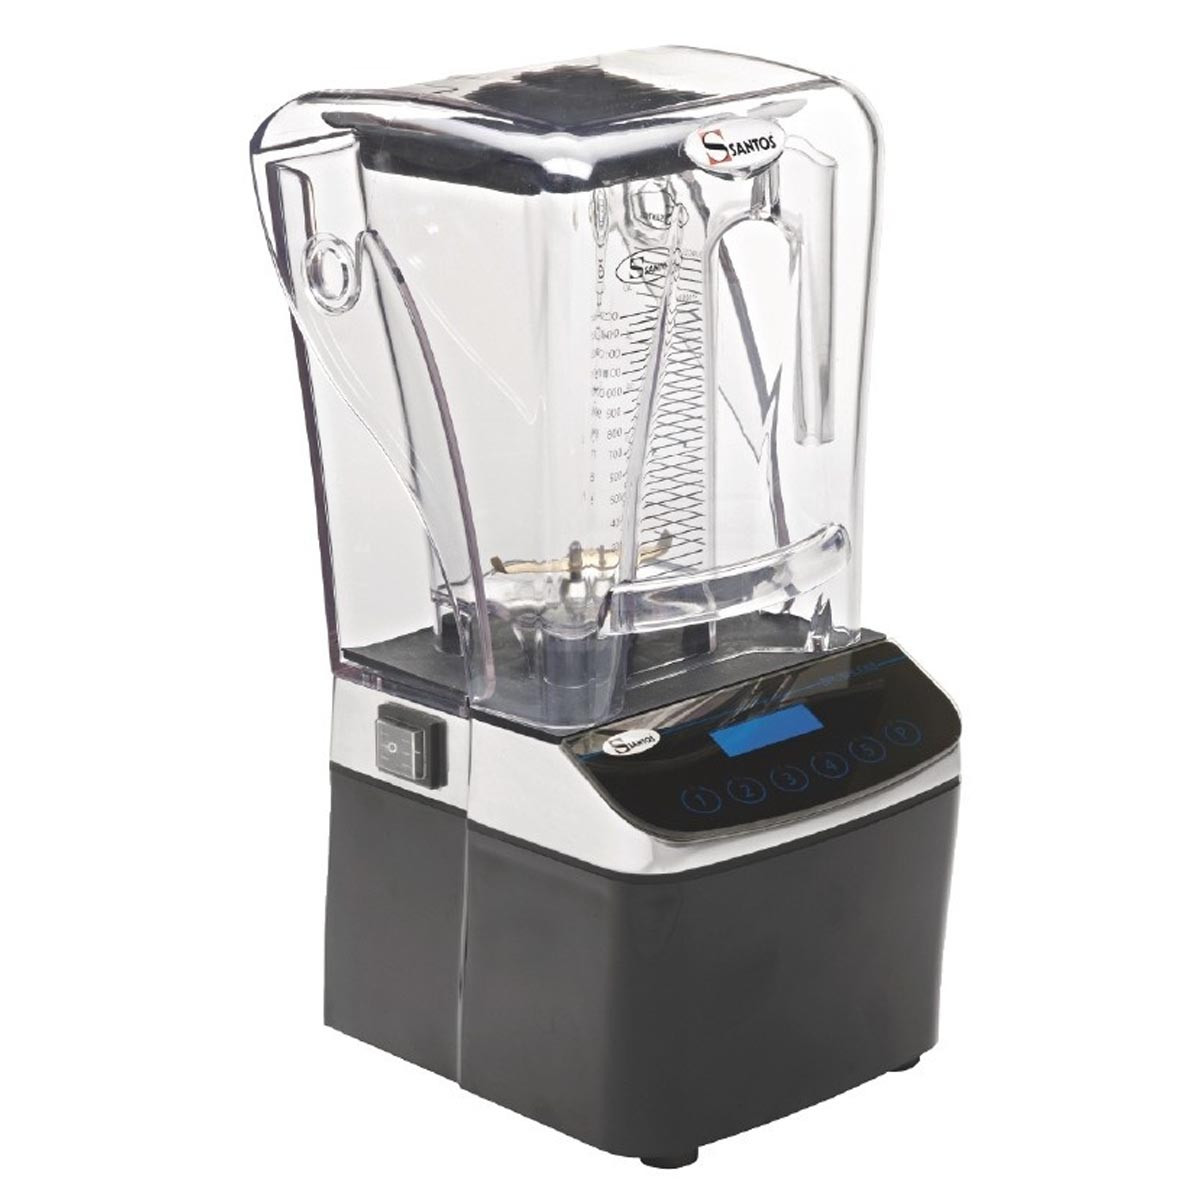 Santos 62A Silent Drink Commercial Blender